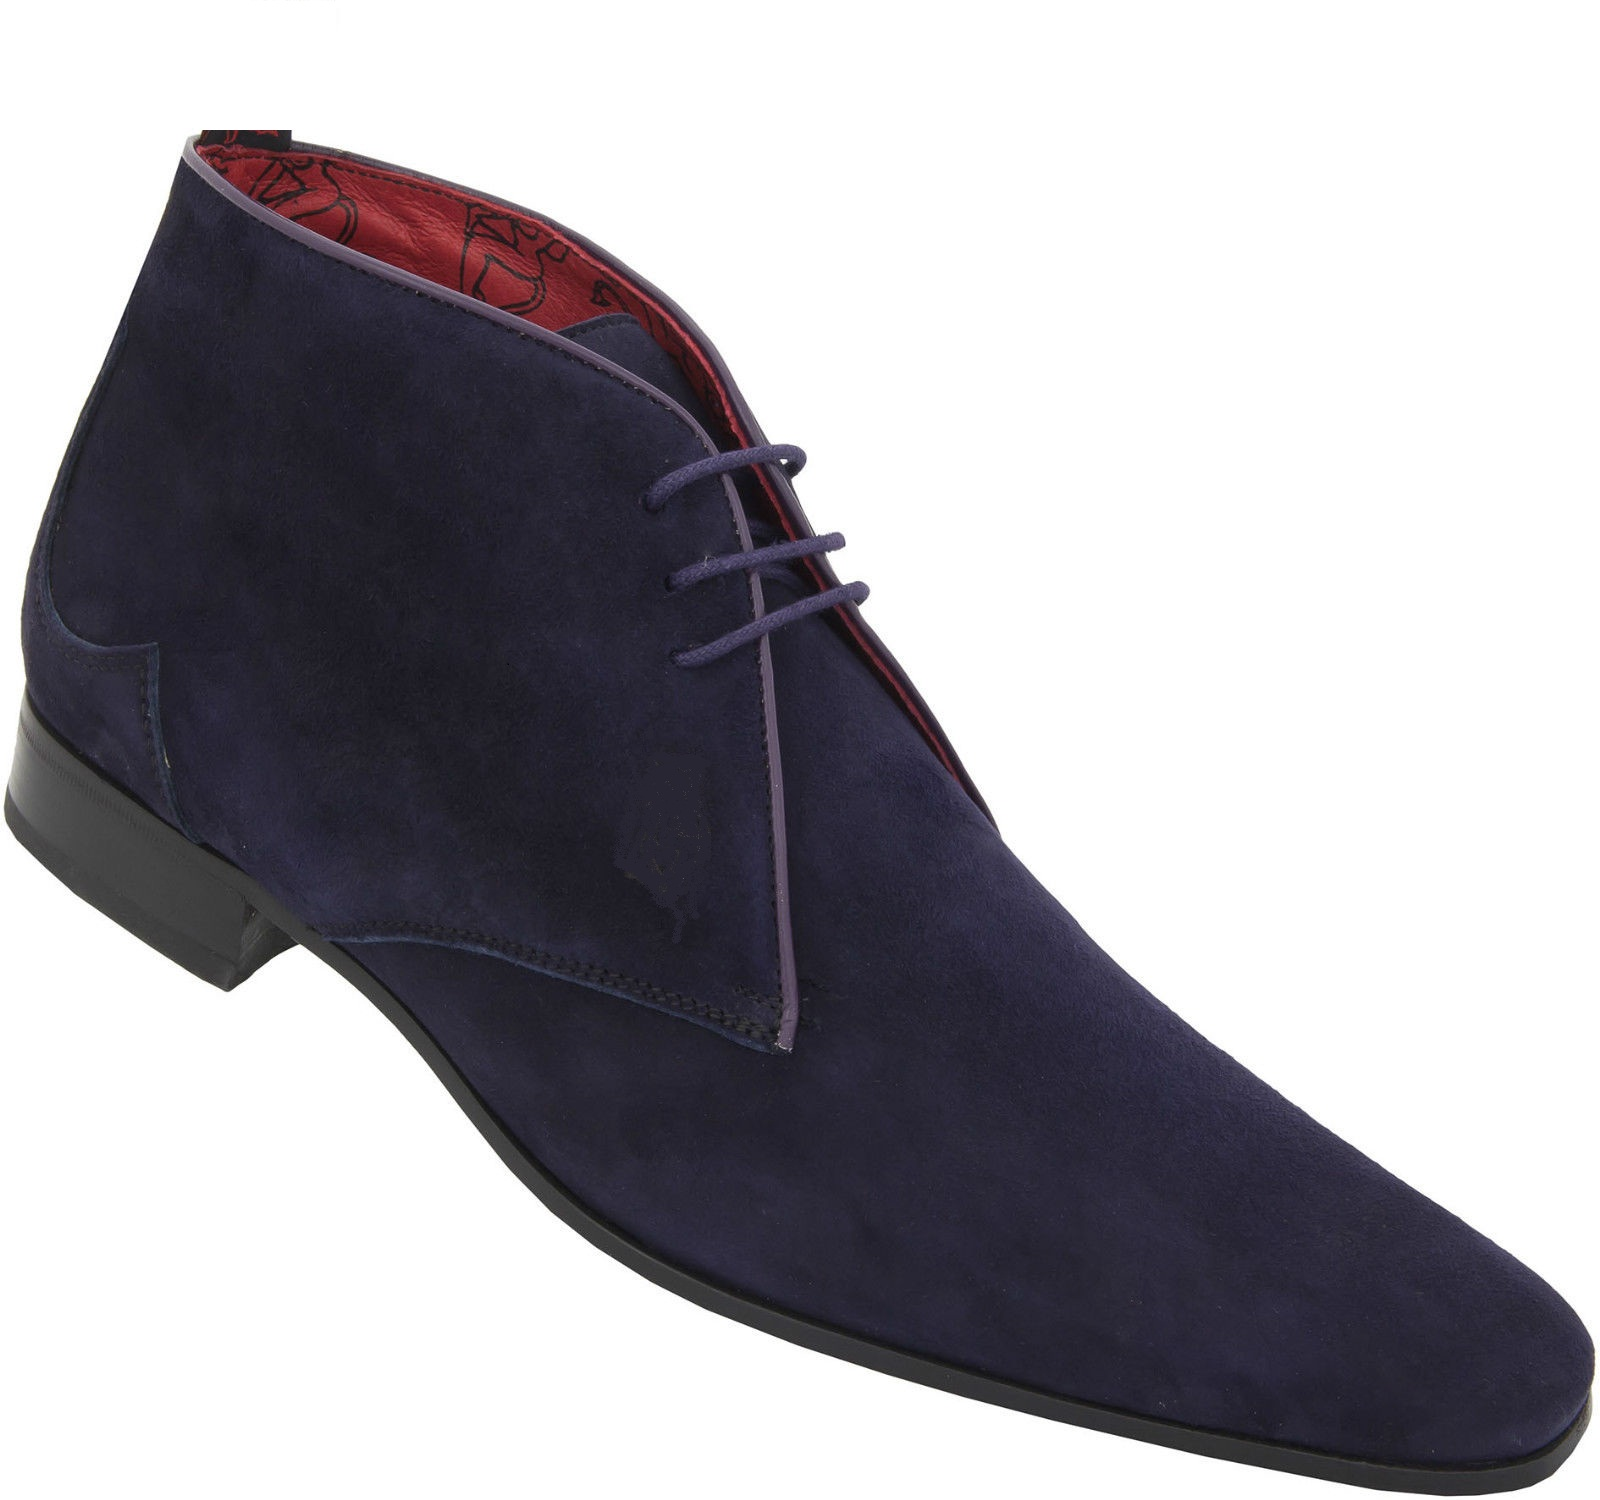 f02820ec4 MEN HANDMADE BLUE SUEDE BOOT, MEN ANKLE-HIGH BLUE DRESS AND CASUAL SUEDE  BOOTS